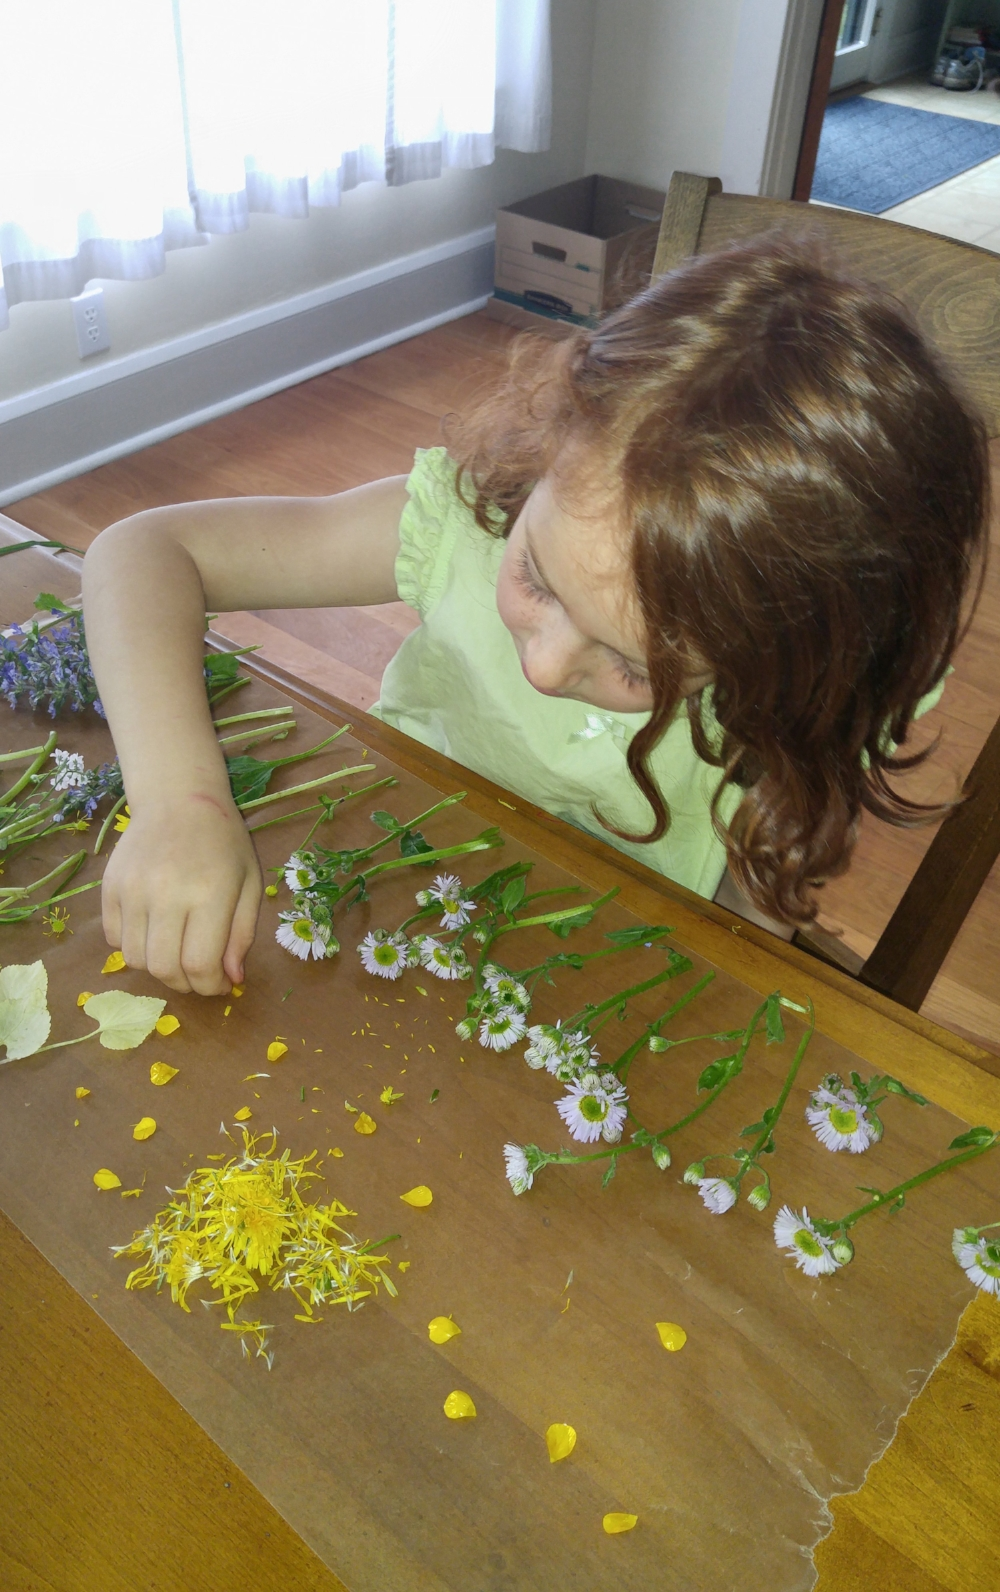 Natural materials are an essential part of our kits. They allow for heightened sensory learning!